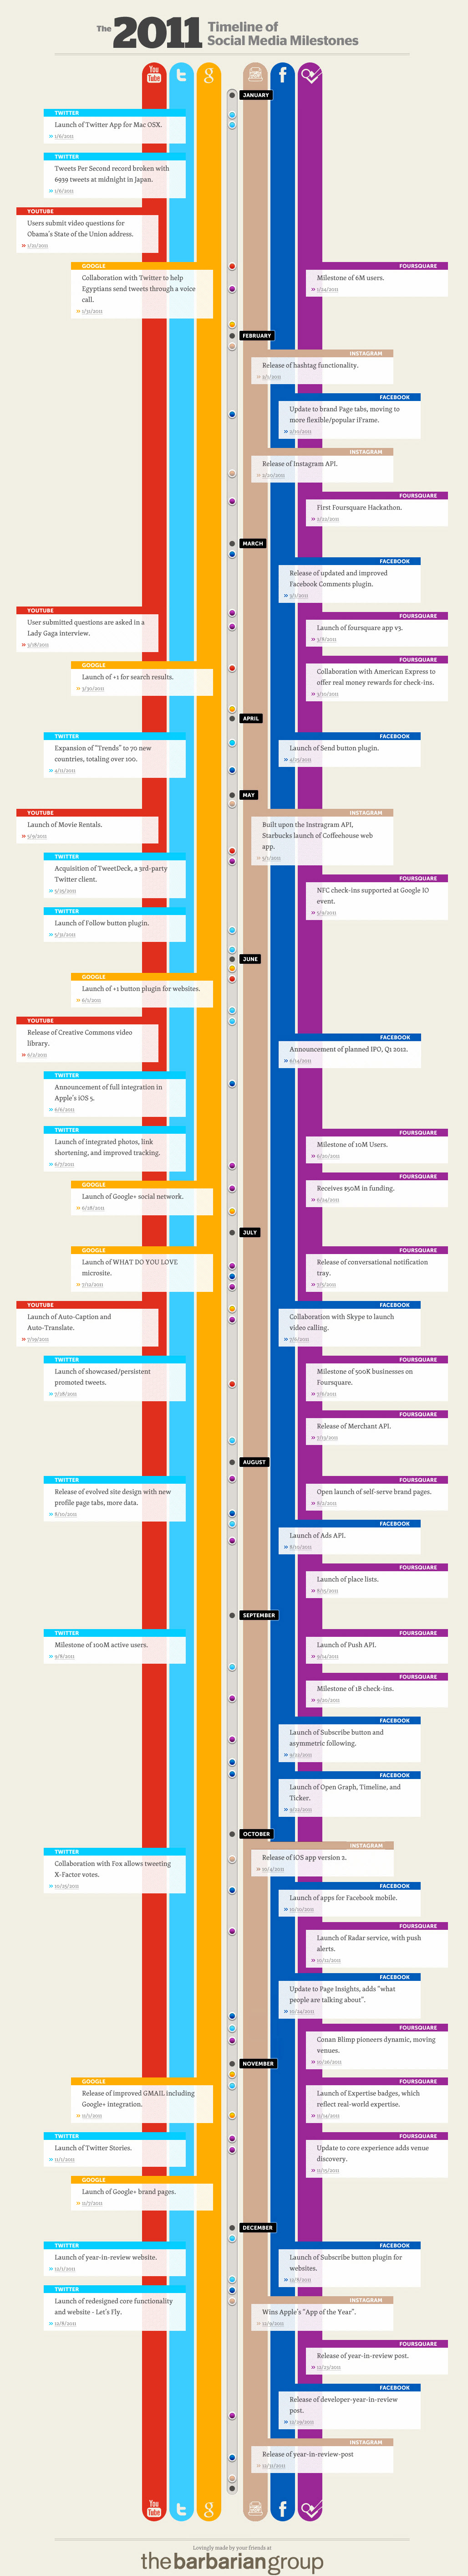 2011 Timeline of Social Media